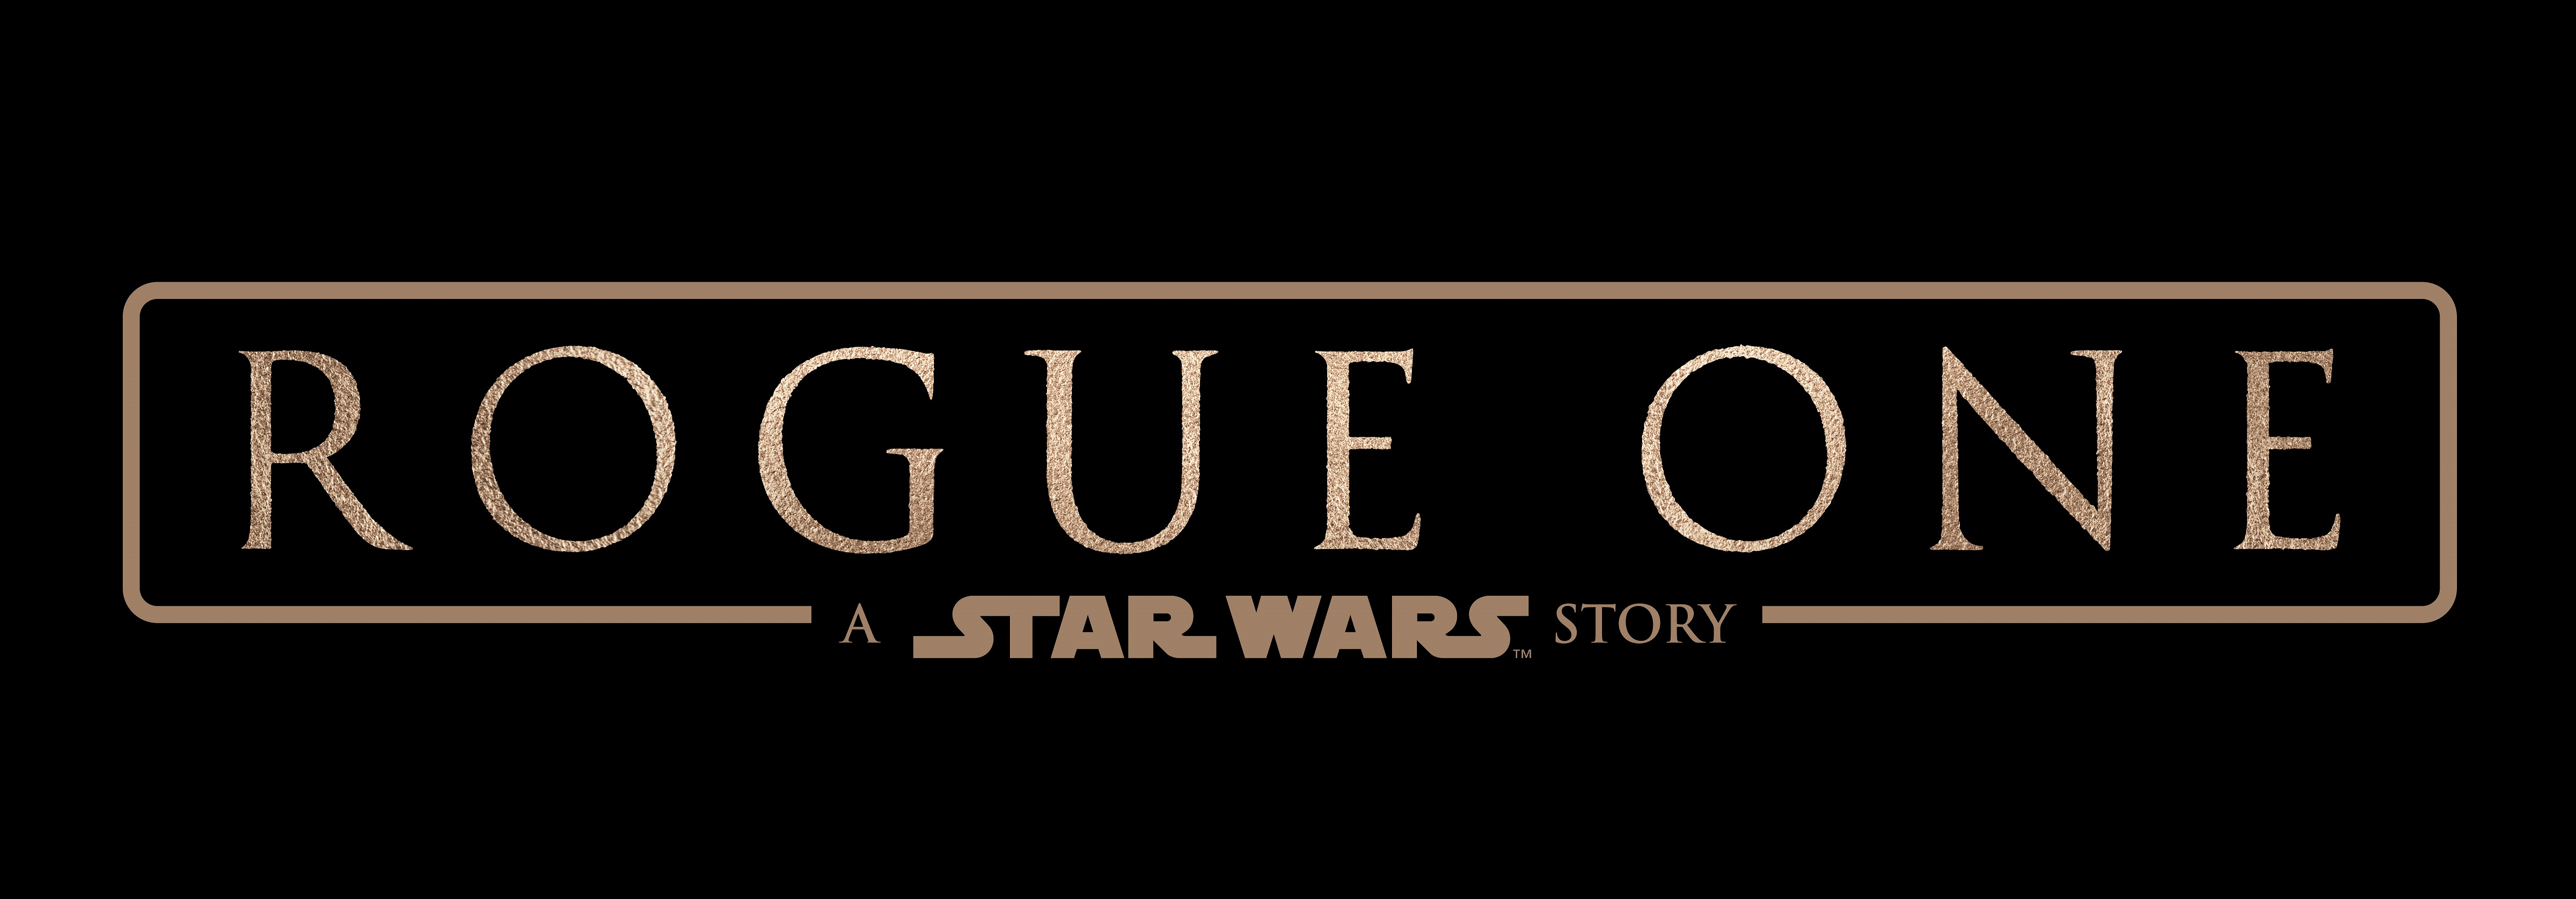 Rogue One A Star Wars Story-17Agosto2015 (2)